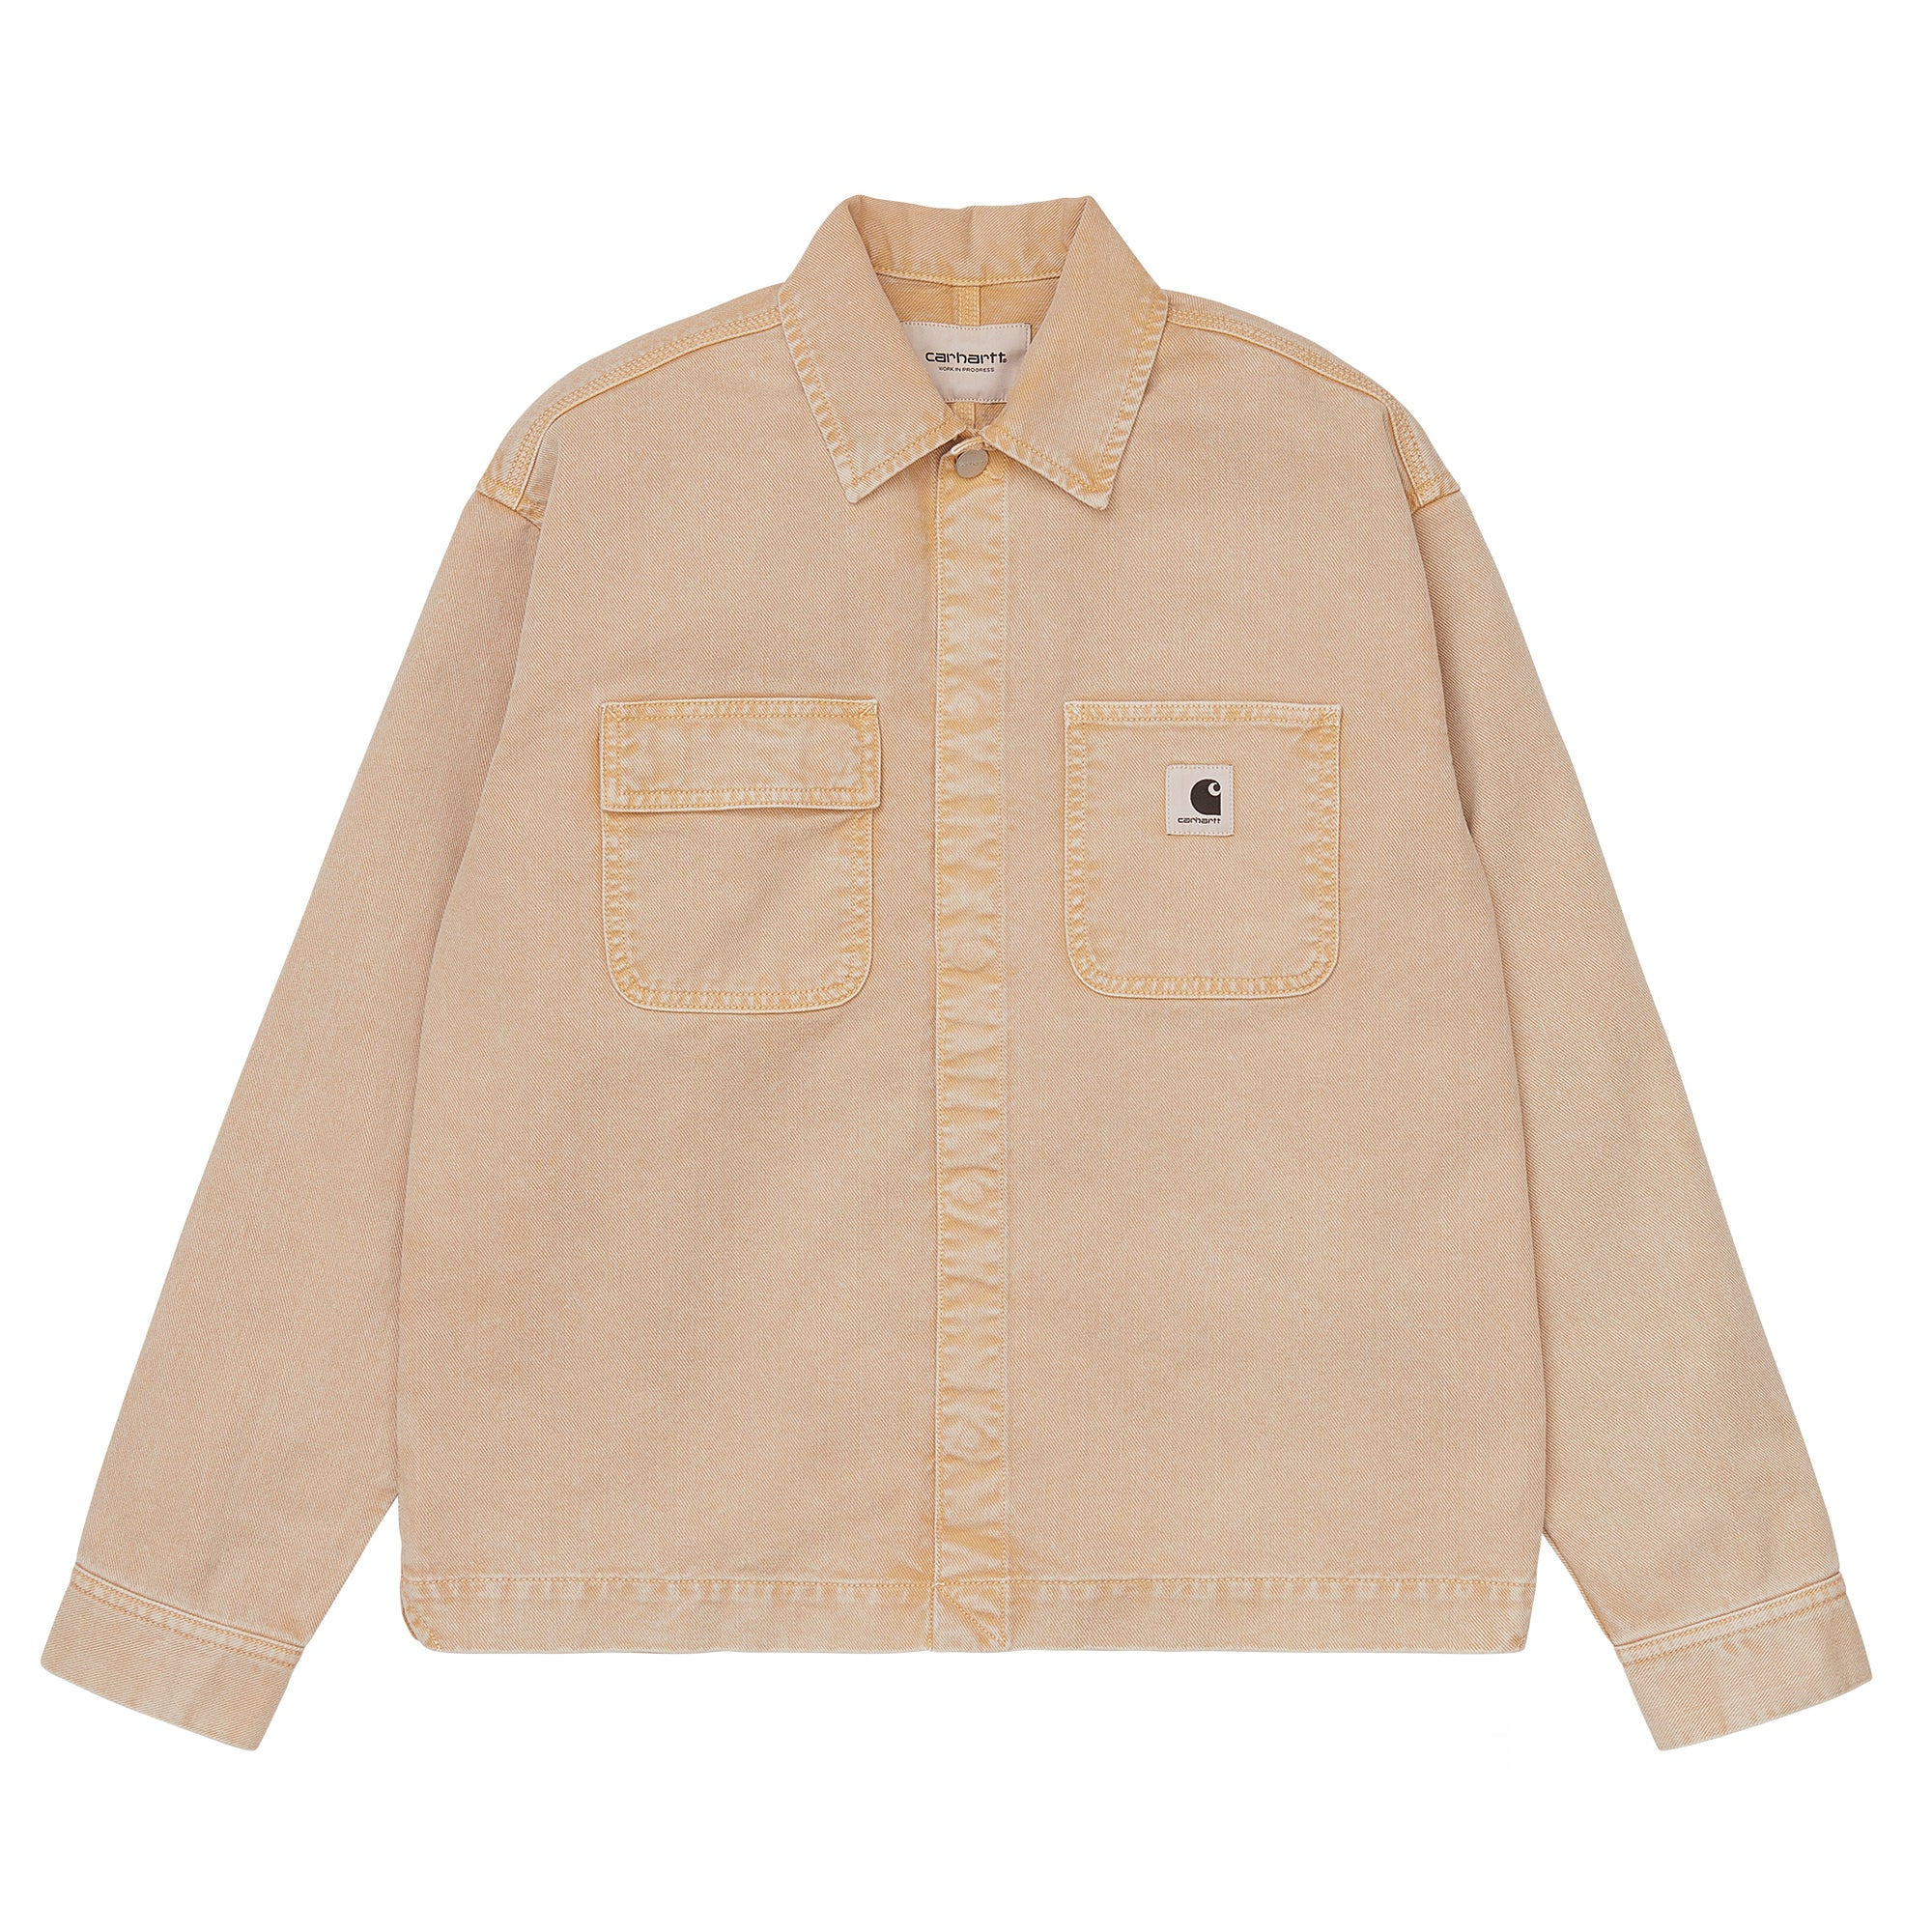 Carhartt WIP Womens Sonora Shirt Jacket: Dusty Hamilton Brown - The Union Project